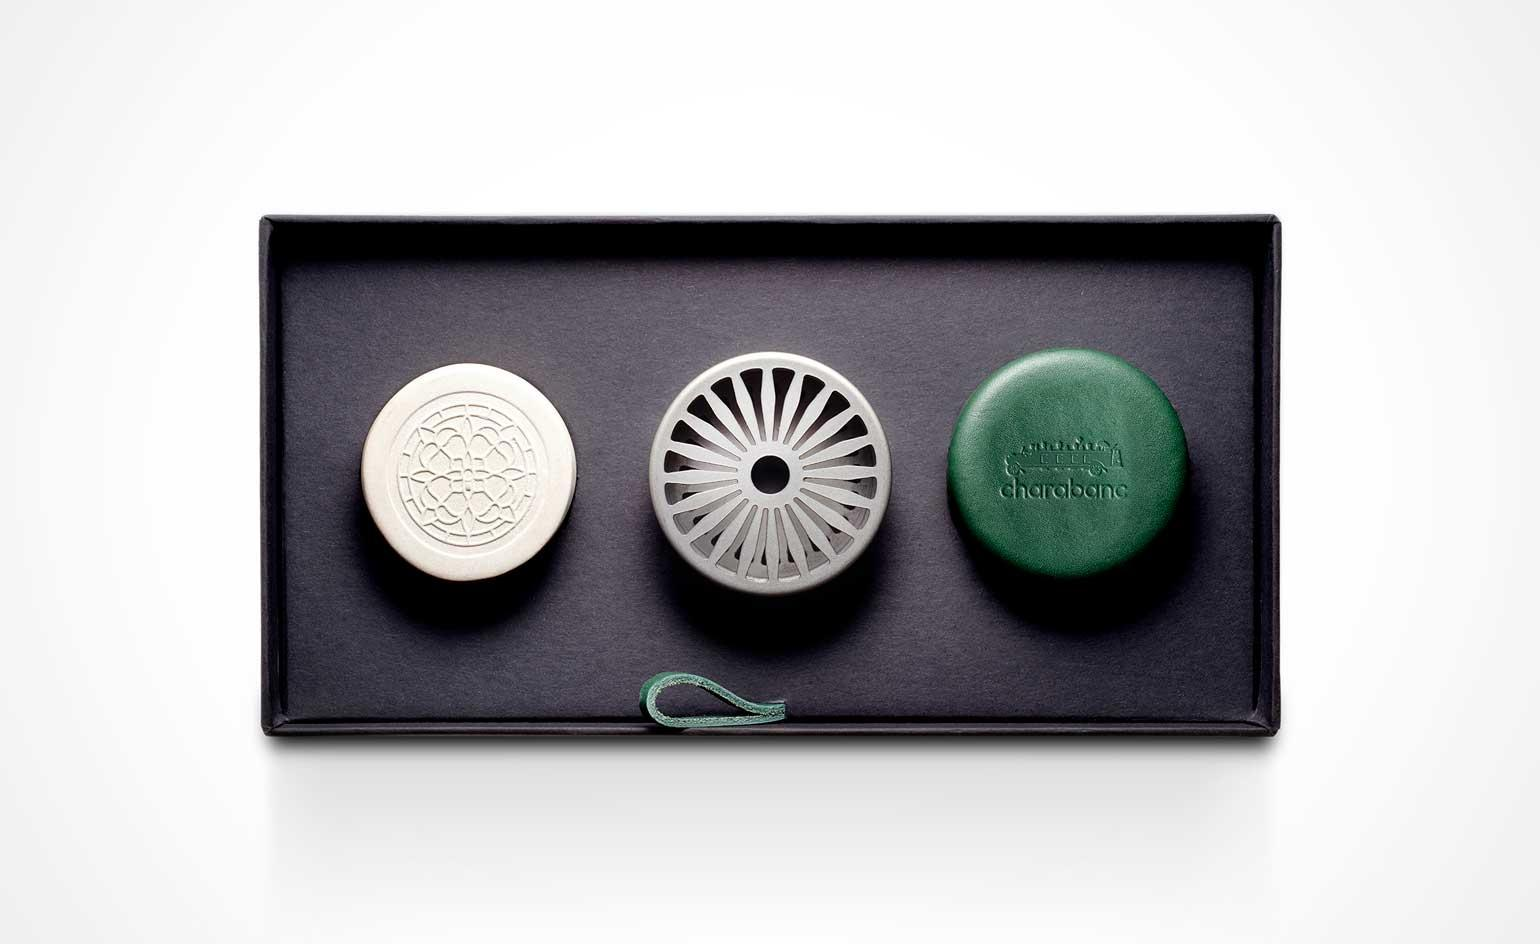 Charabanc automobile fragrance accessories are inspired by the golden age of travel